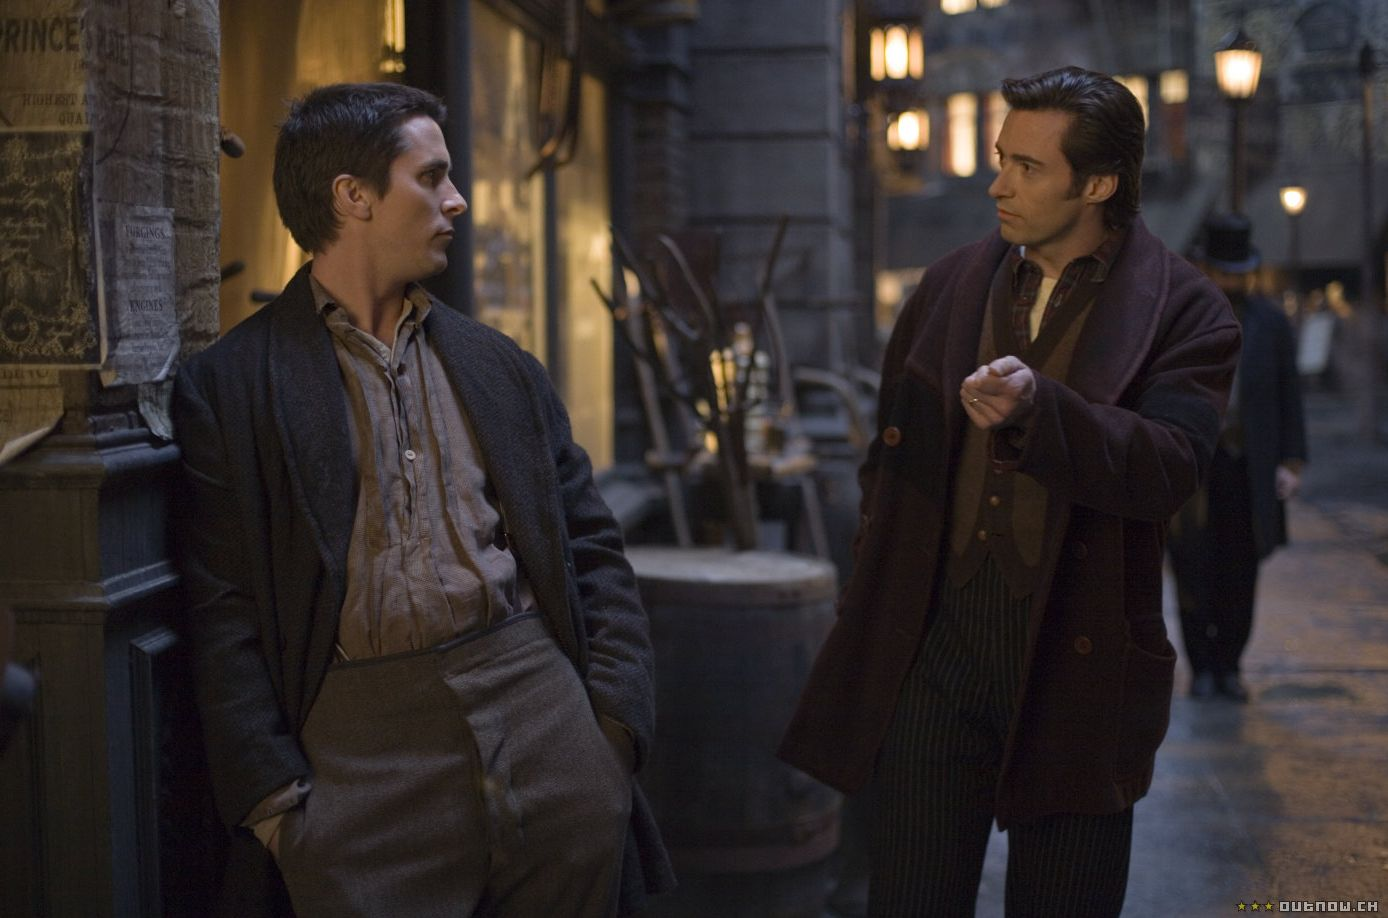 Christian Bale and Hugh Jackman in The Prestige